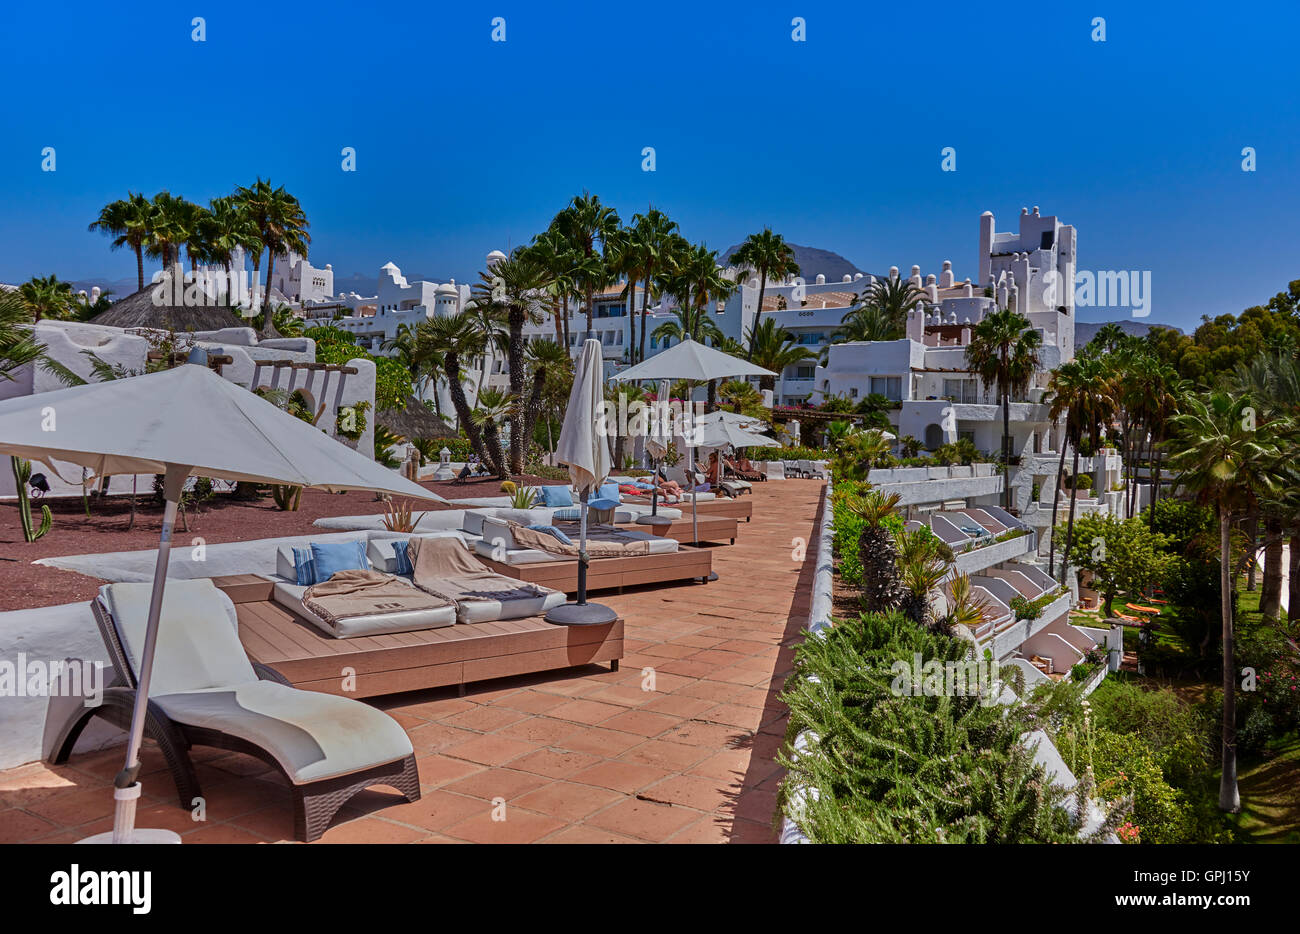 hotel jardin tropical costa adeje tenerife stock photo